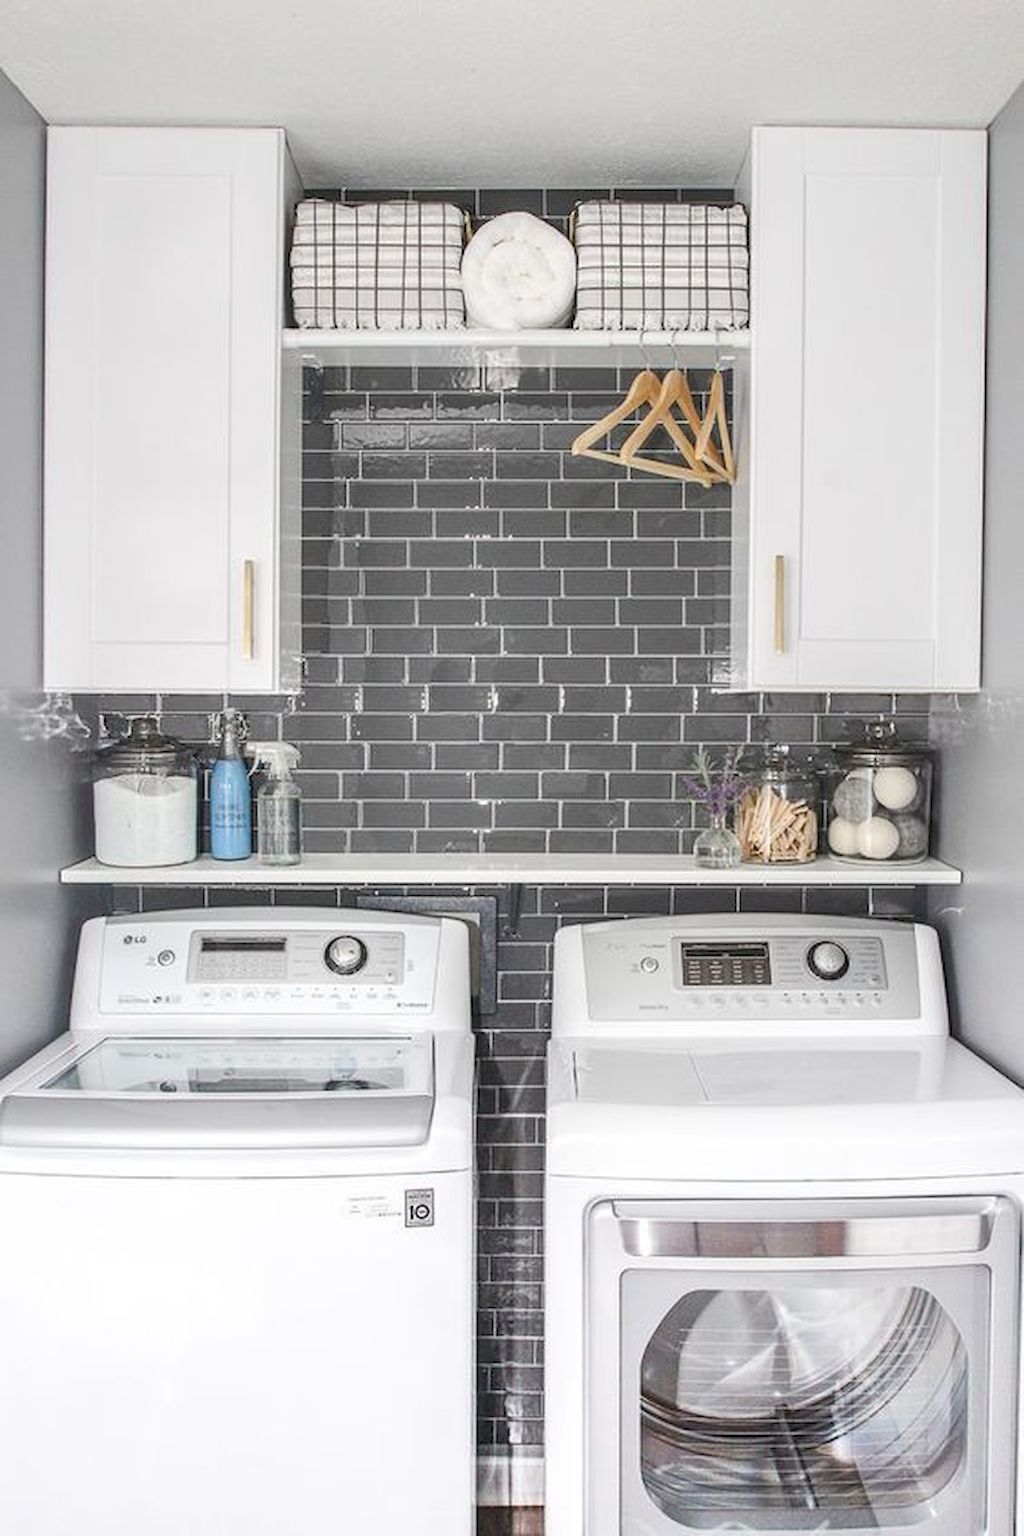 60 Functional Small Laundry Room Design Ideas images